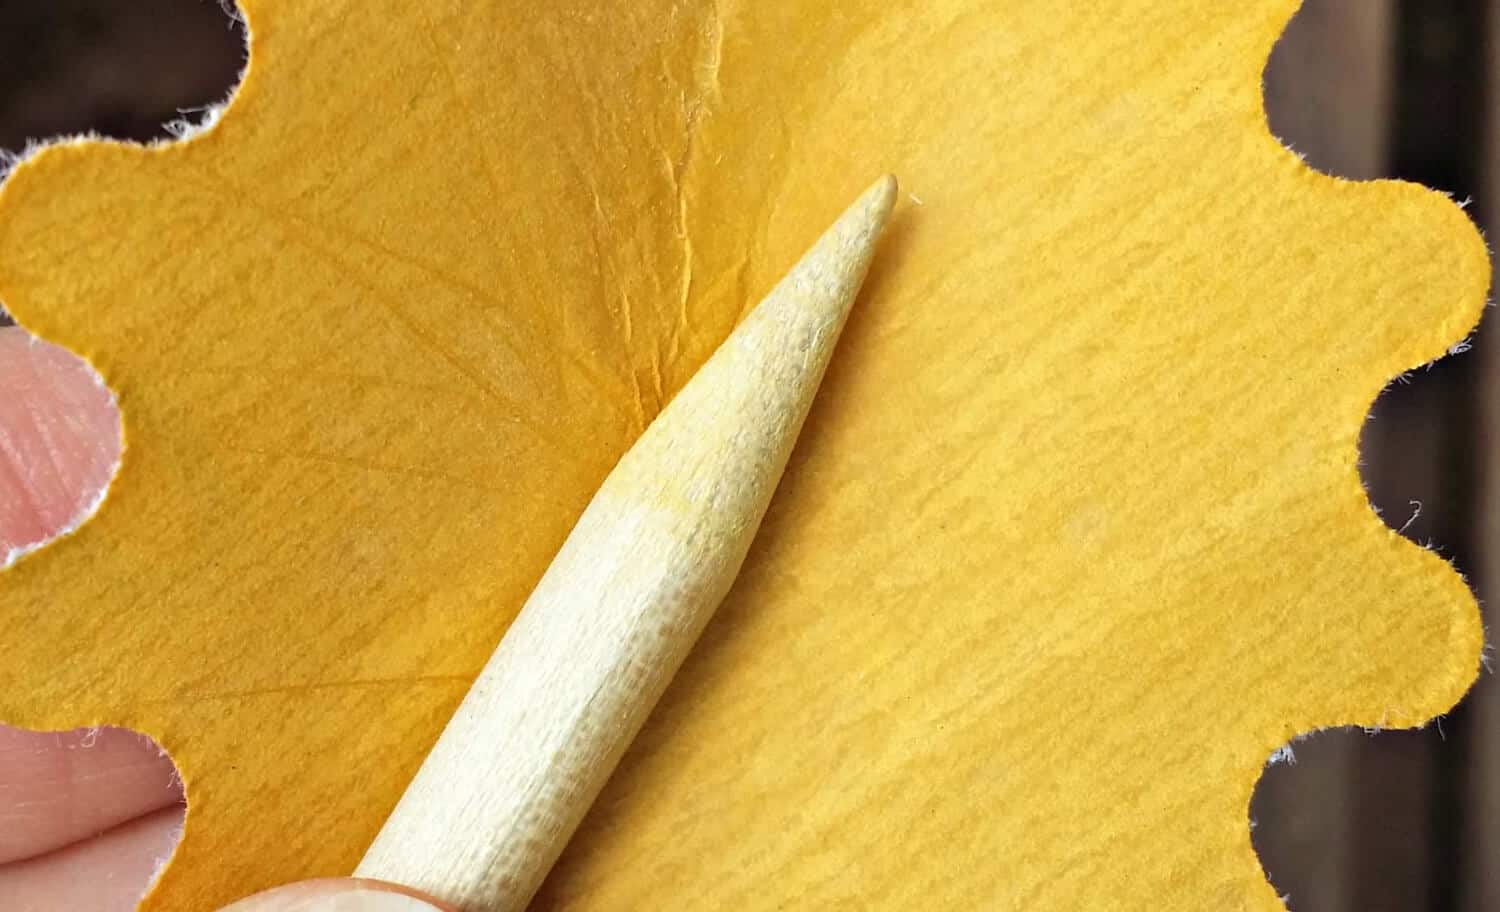 pointed end of wooden dowel sanded smooth for DIY drop spindle